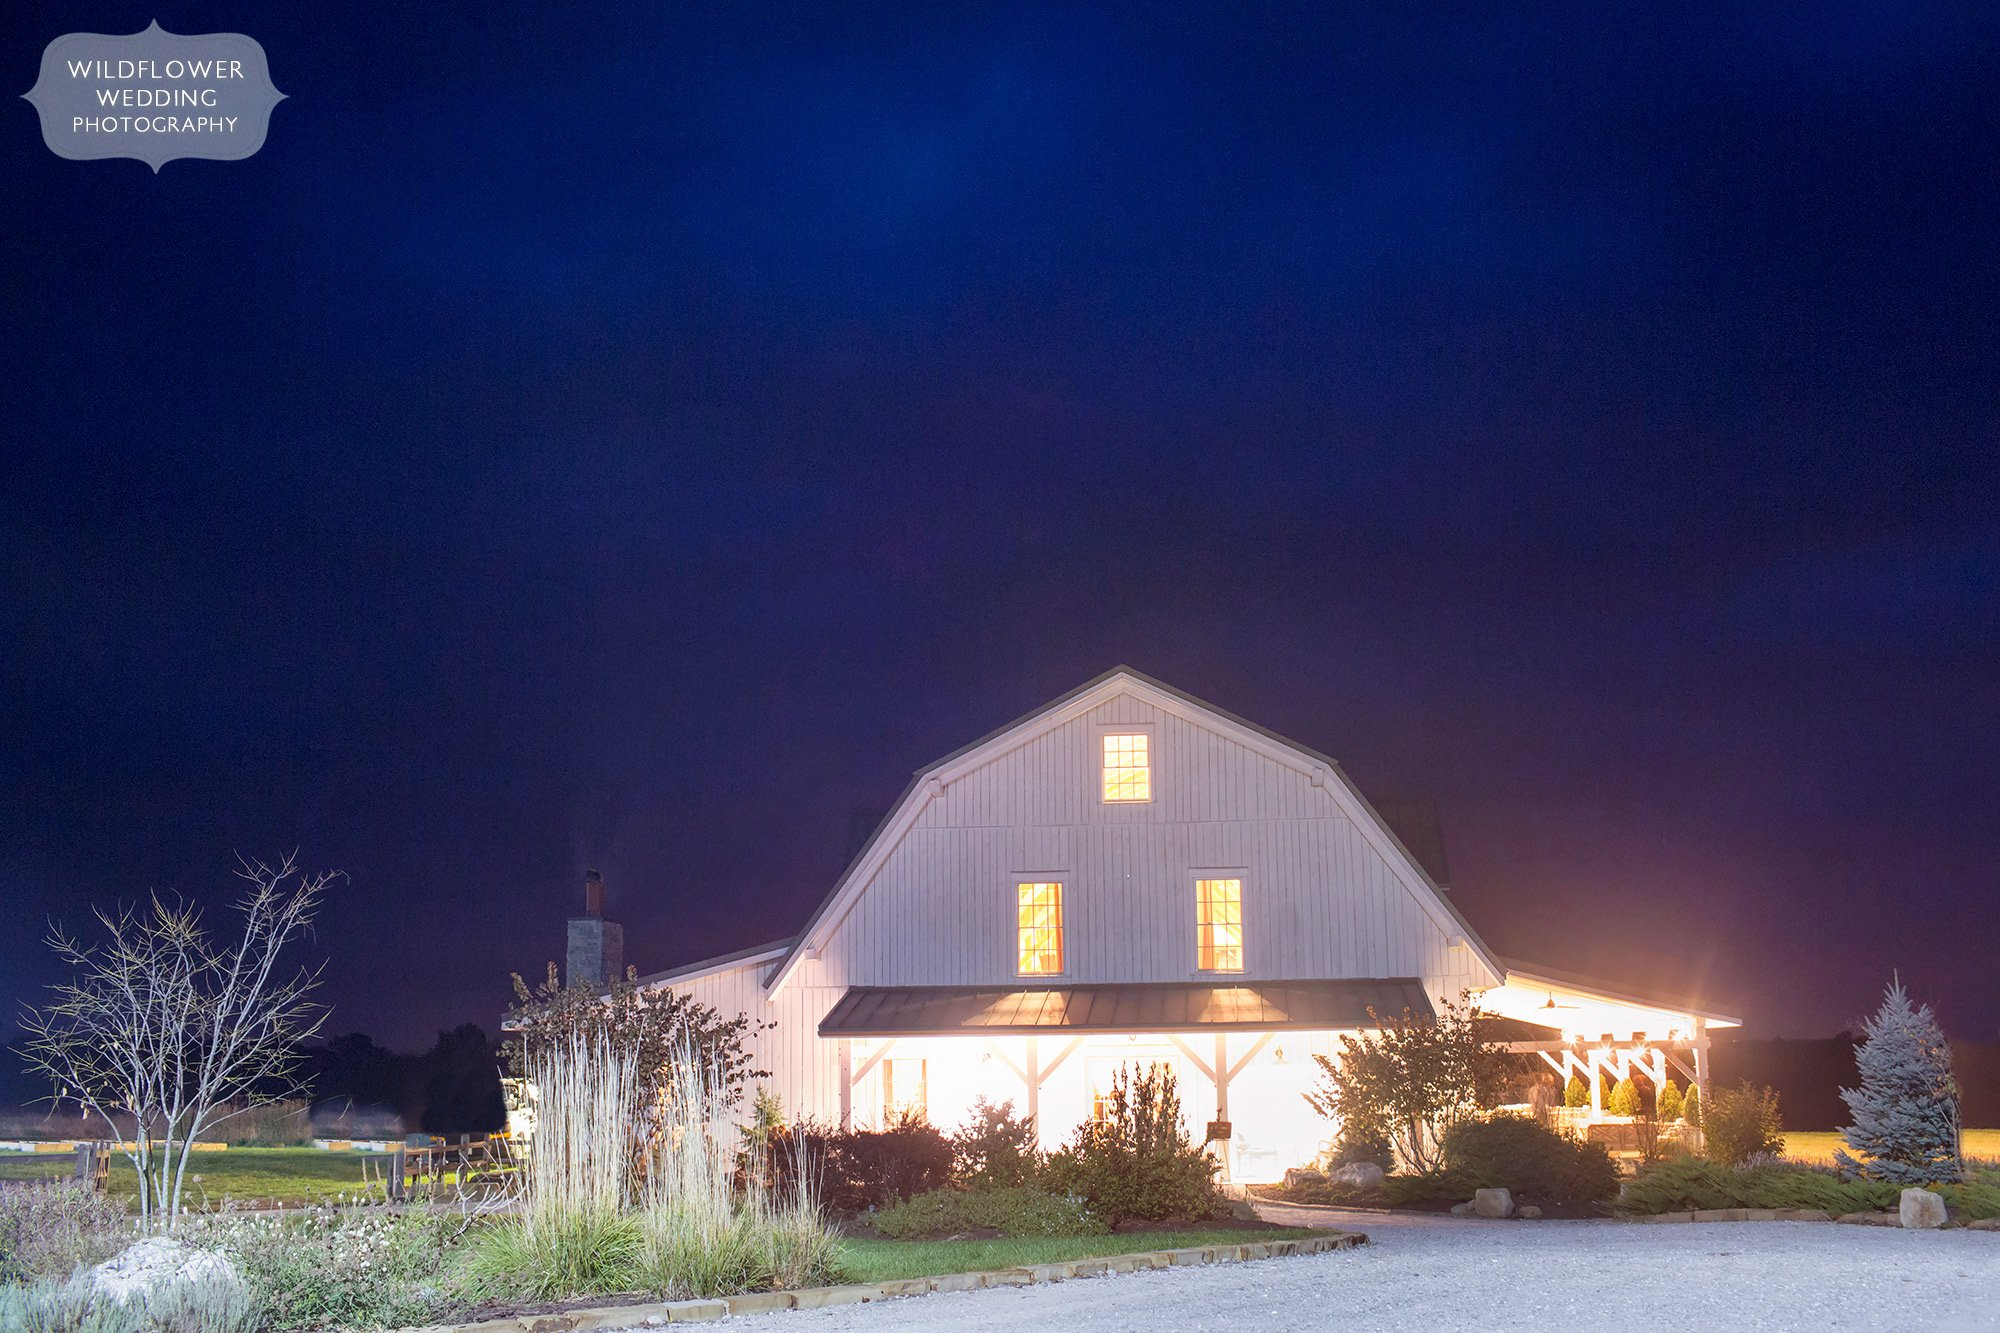 The white barn at Blue Bell Farm glows in the twilight for this outdoor November wedding near Columbia, MO.